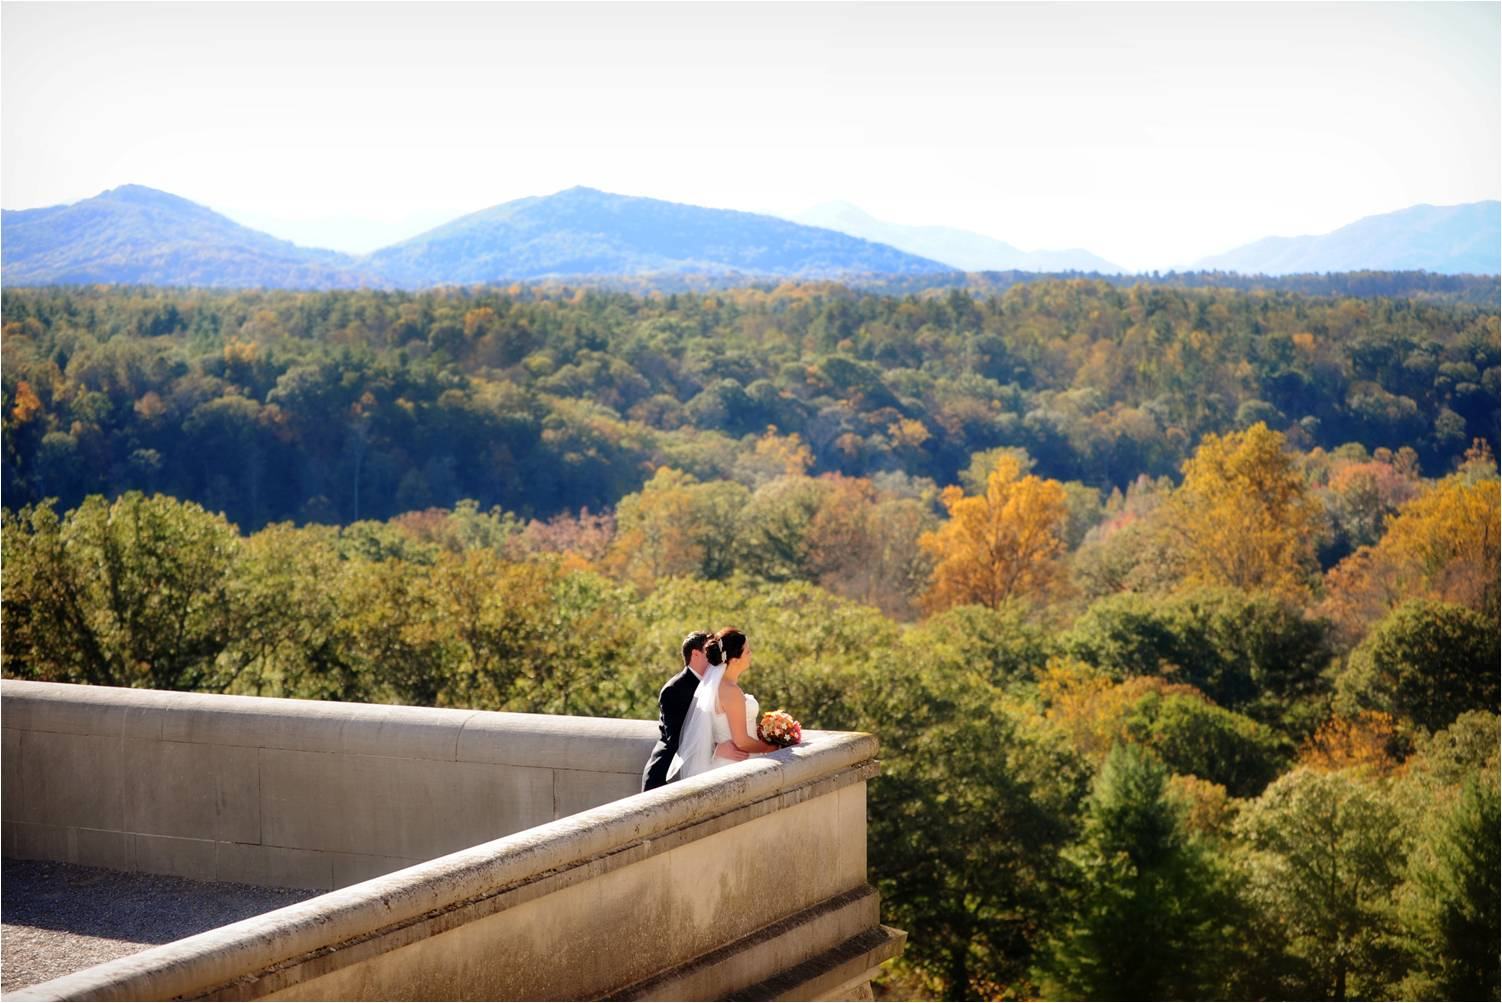 North Carolina Wedding Venue Situated Amidst Gorgeous Trees And Sprawling Mountains | OneWed.com